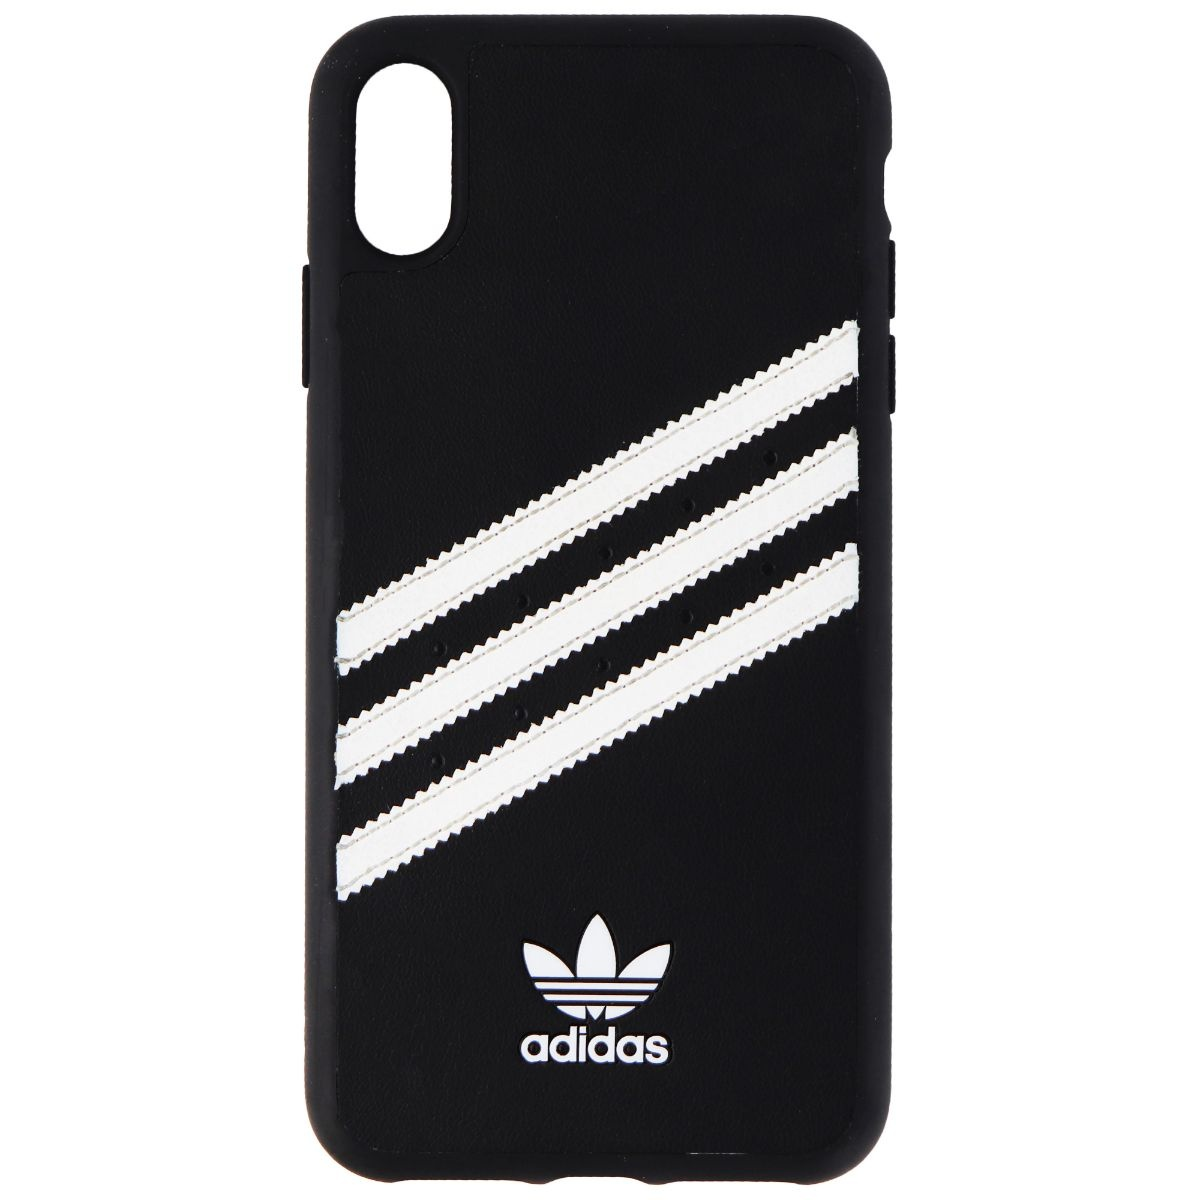 Adidas 3-Stripes Samba Snap Case for Apple iPhone XS / X - Black / White Stripes